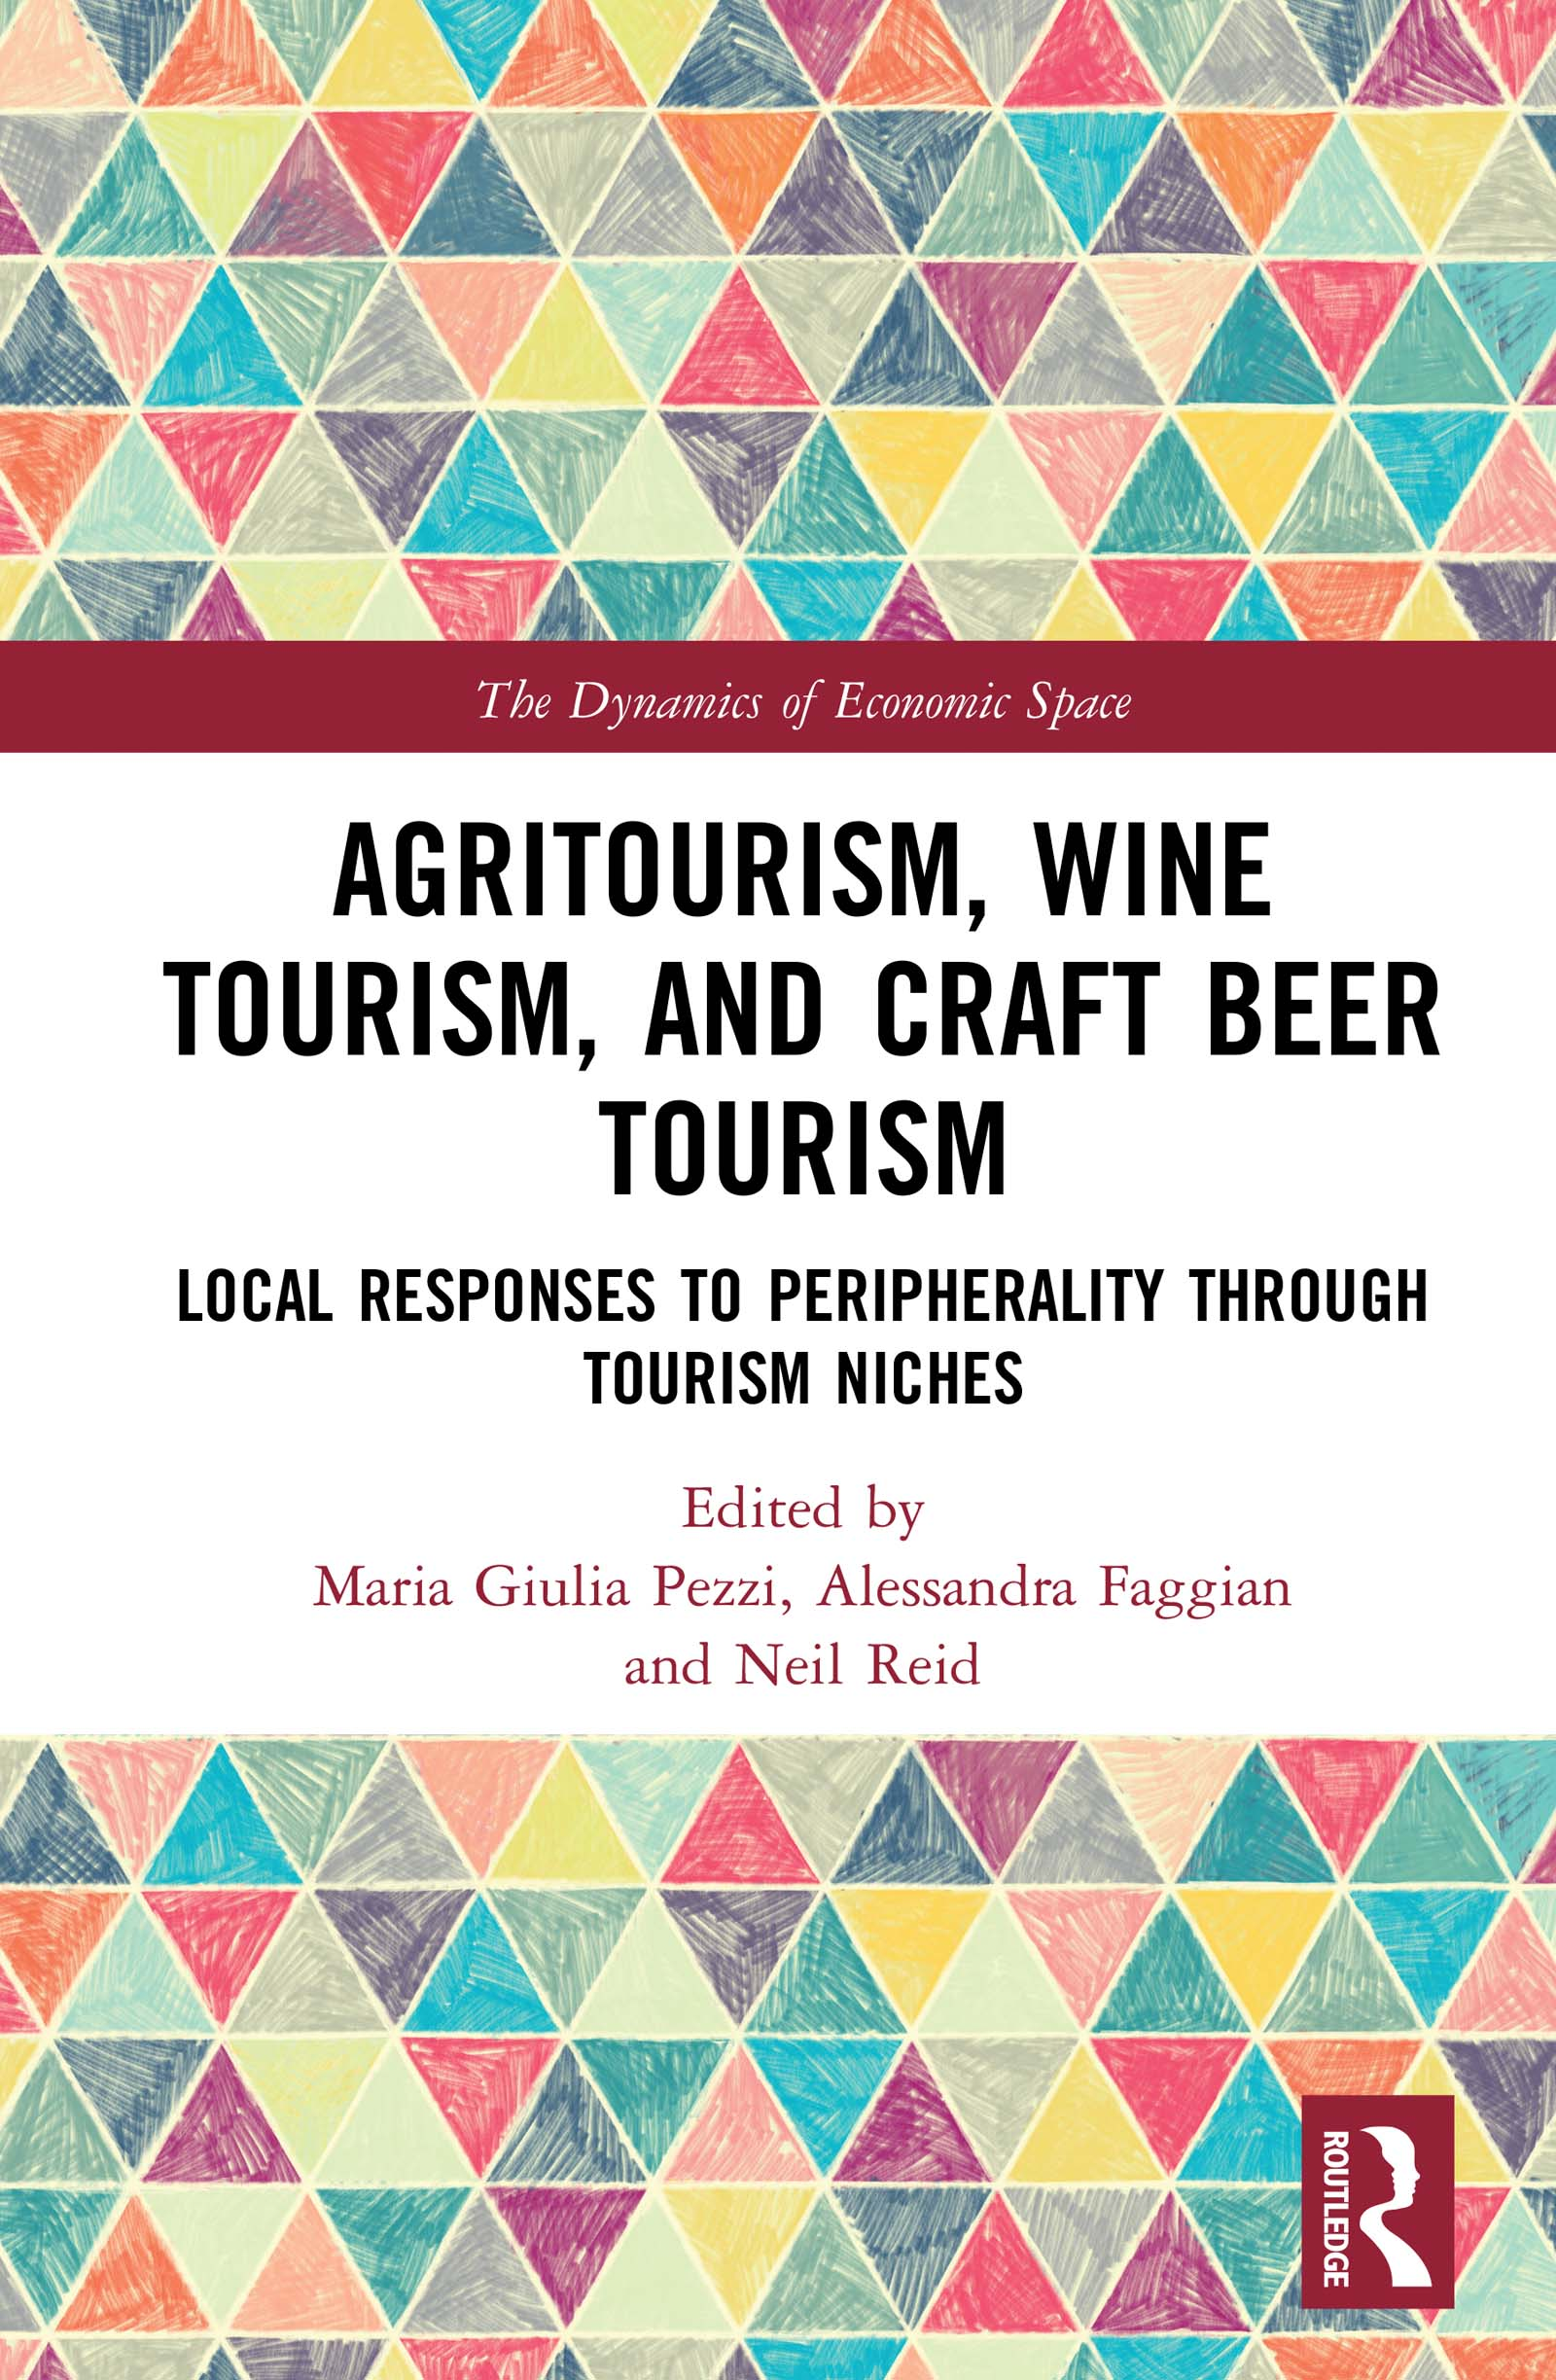 Agritourism, Wine Tourism, and Craft Beer Tourism